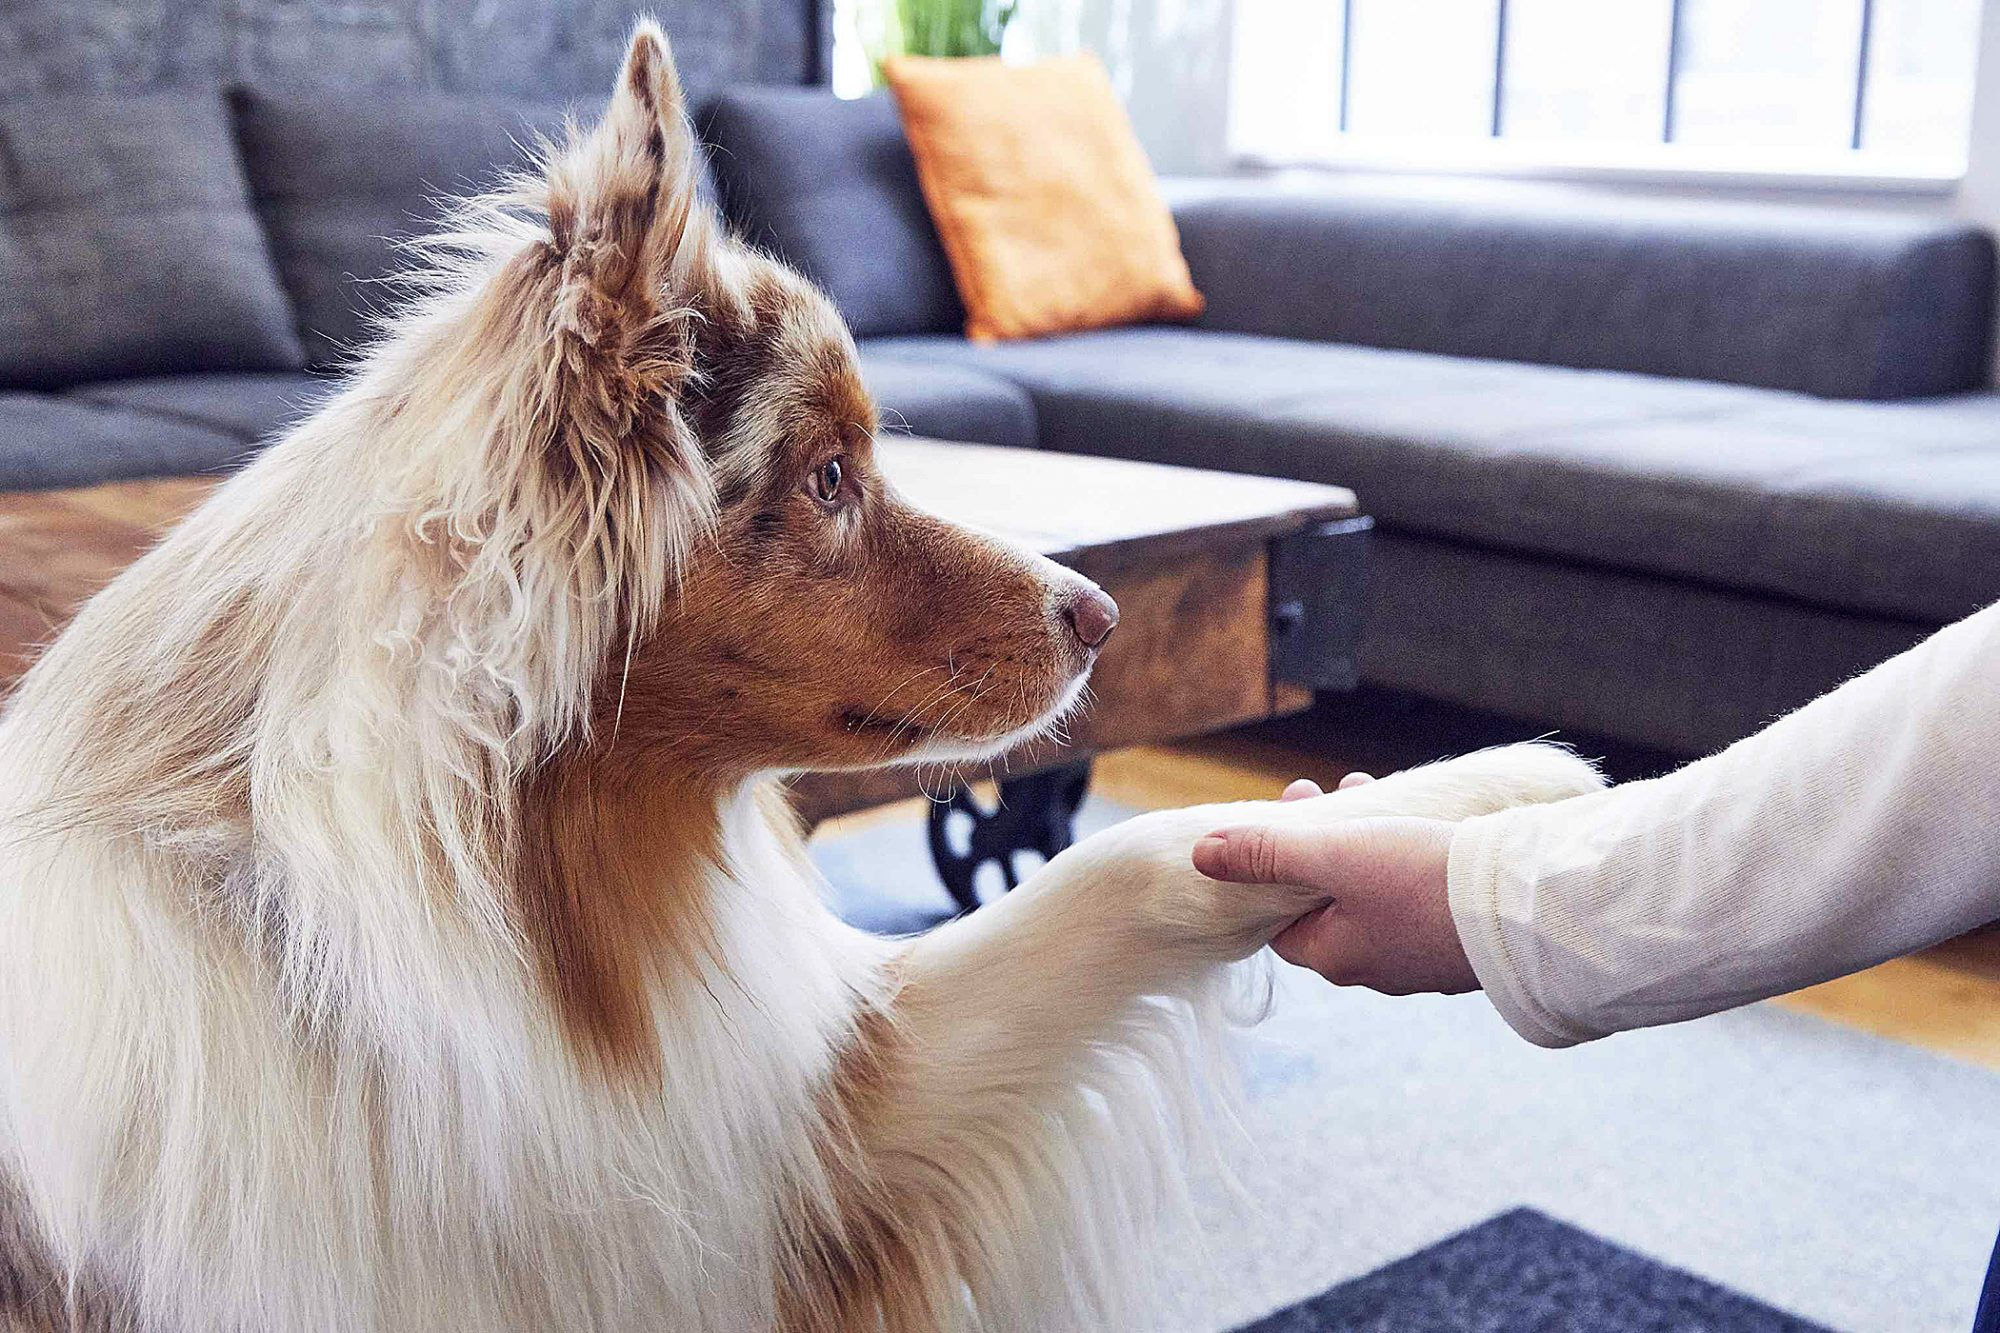 Long-haired dog shakes owner's hand in living room